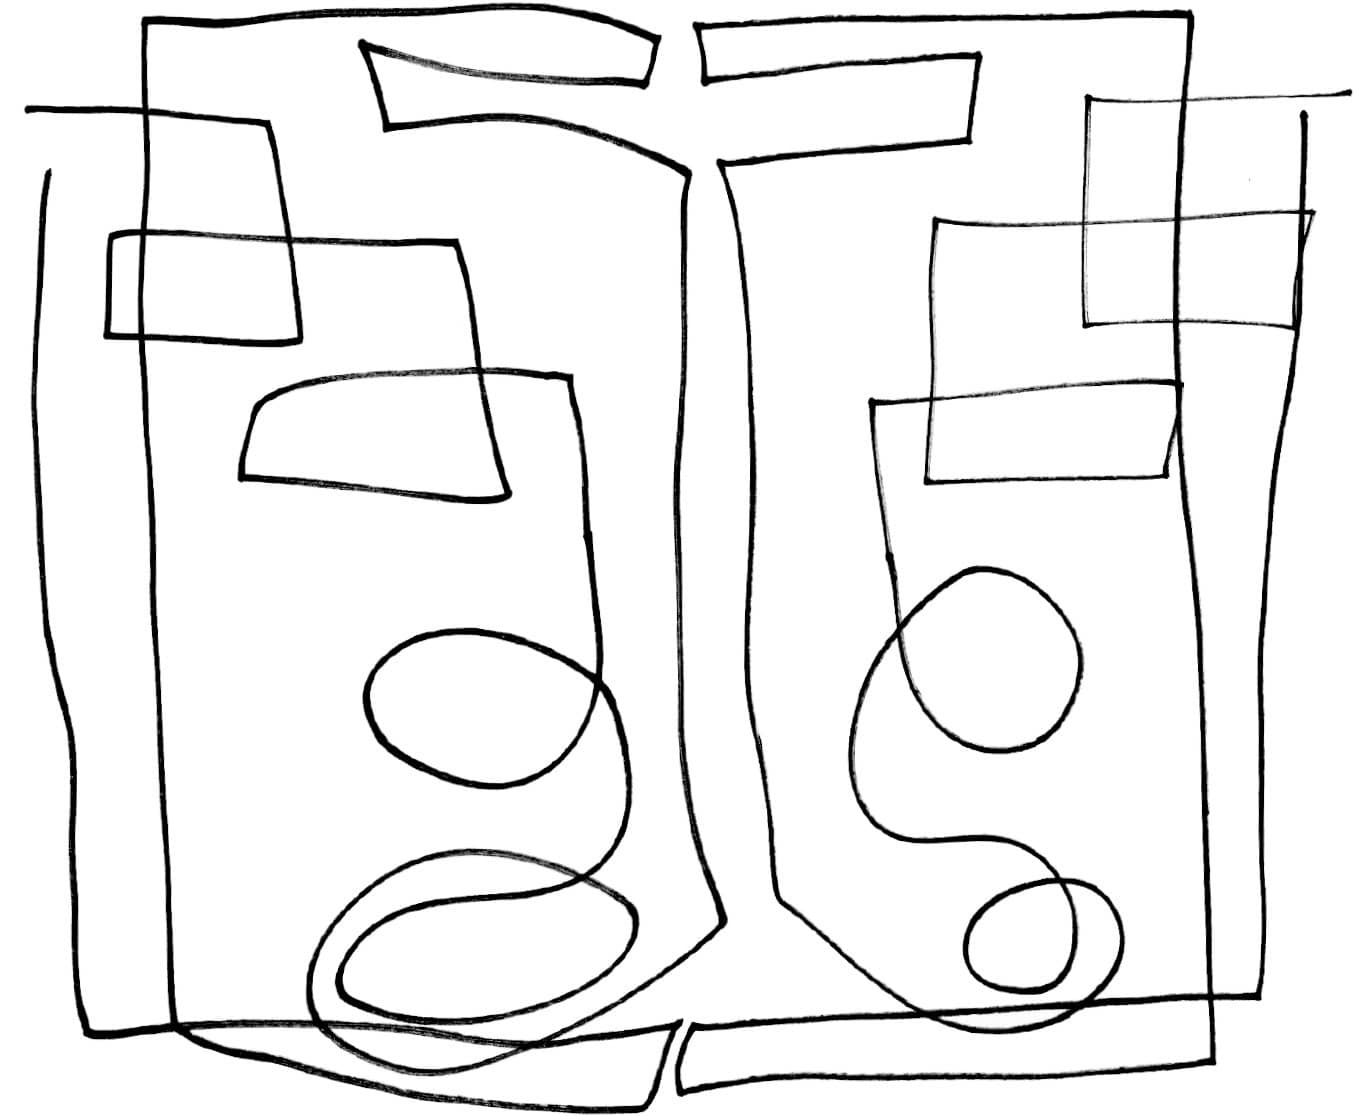 Exercise 3 two handed reflection drawing drawing in black